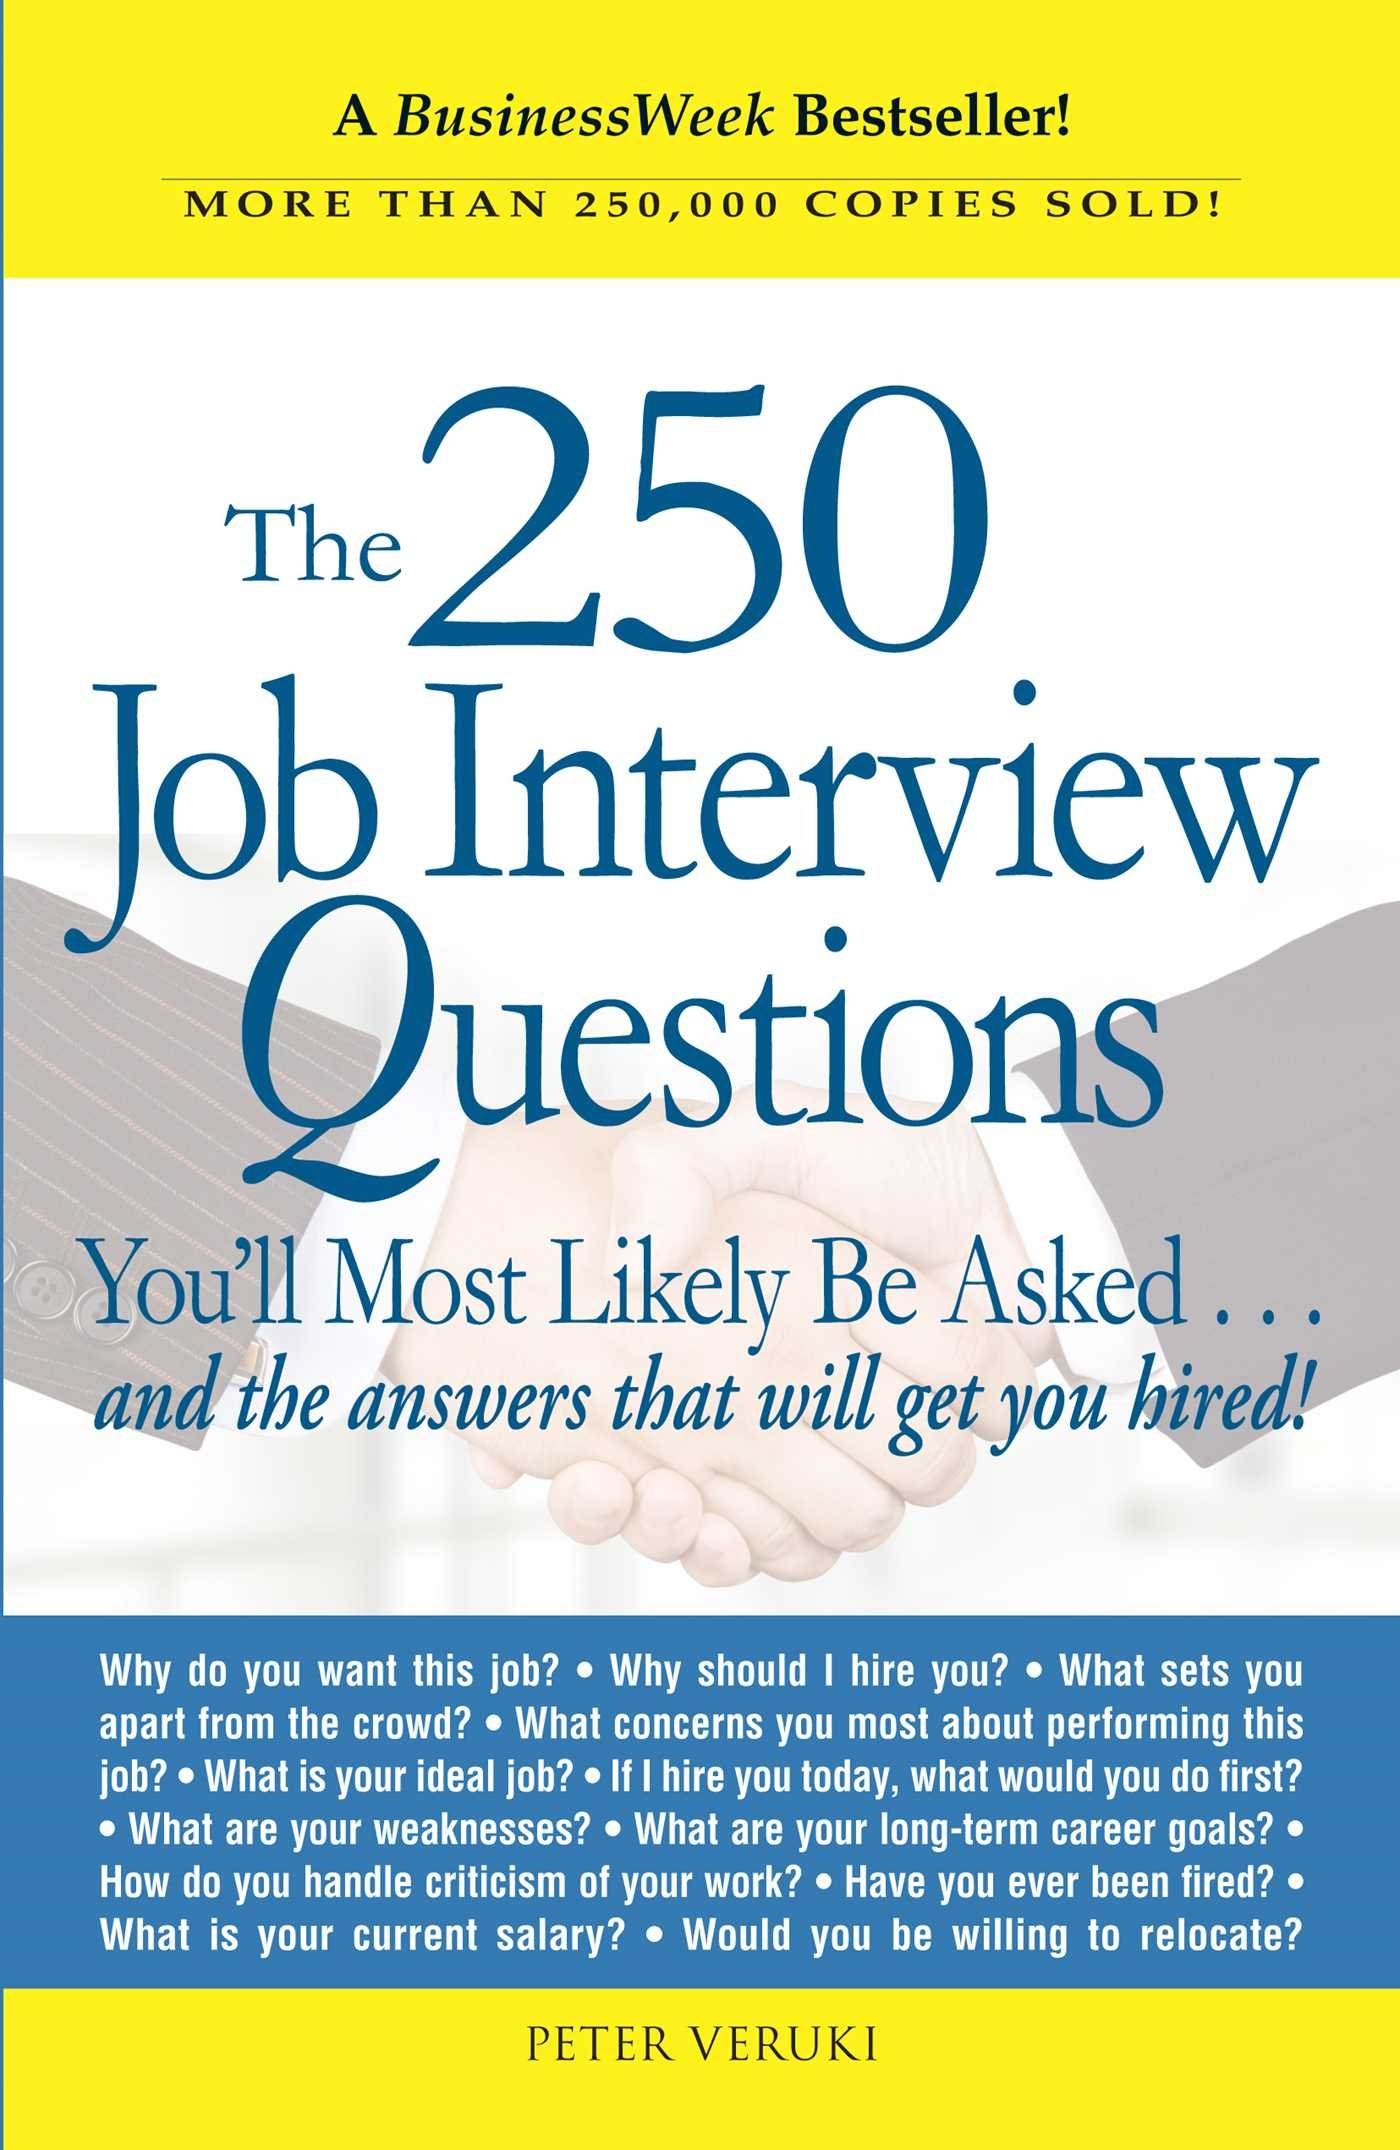 Image for The 250 Job Interview Questions You'll Most Likely Be Asked